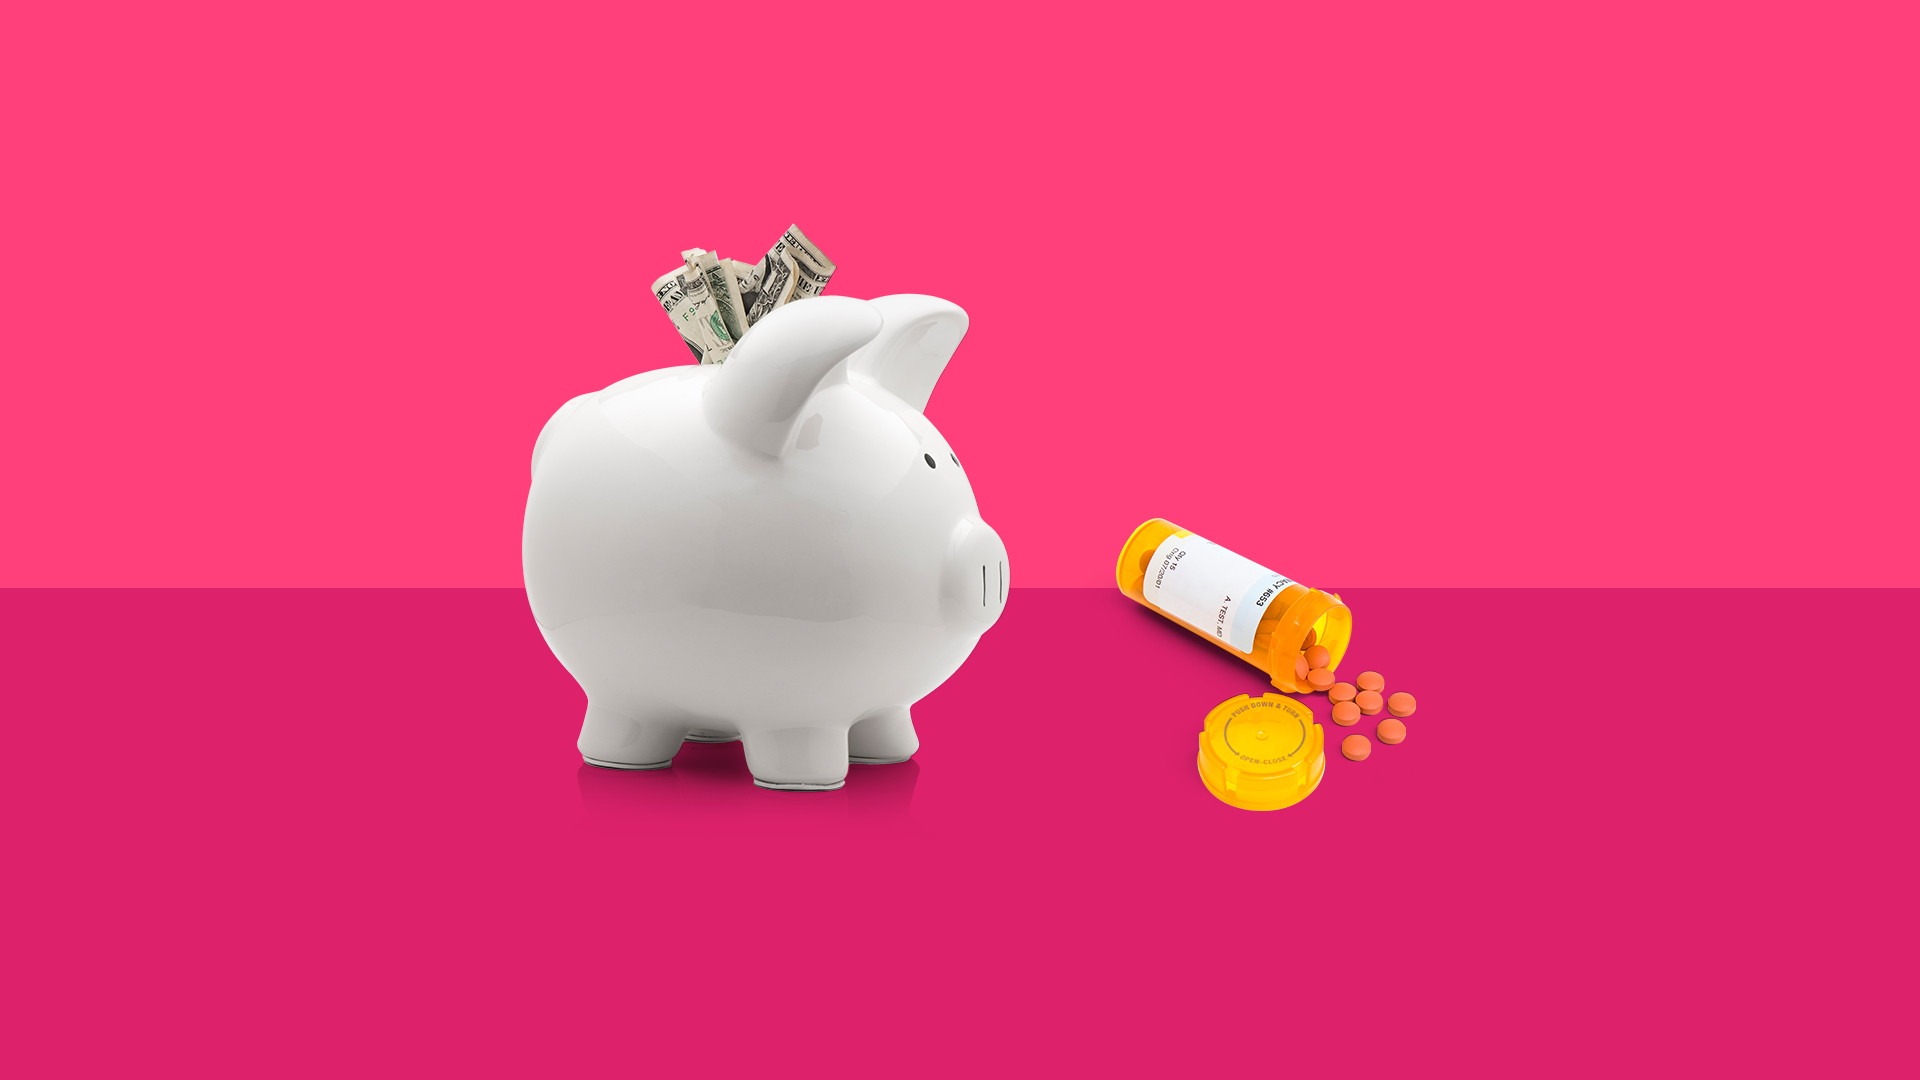 Save money by switching to a cheaper prescription